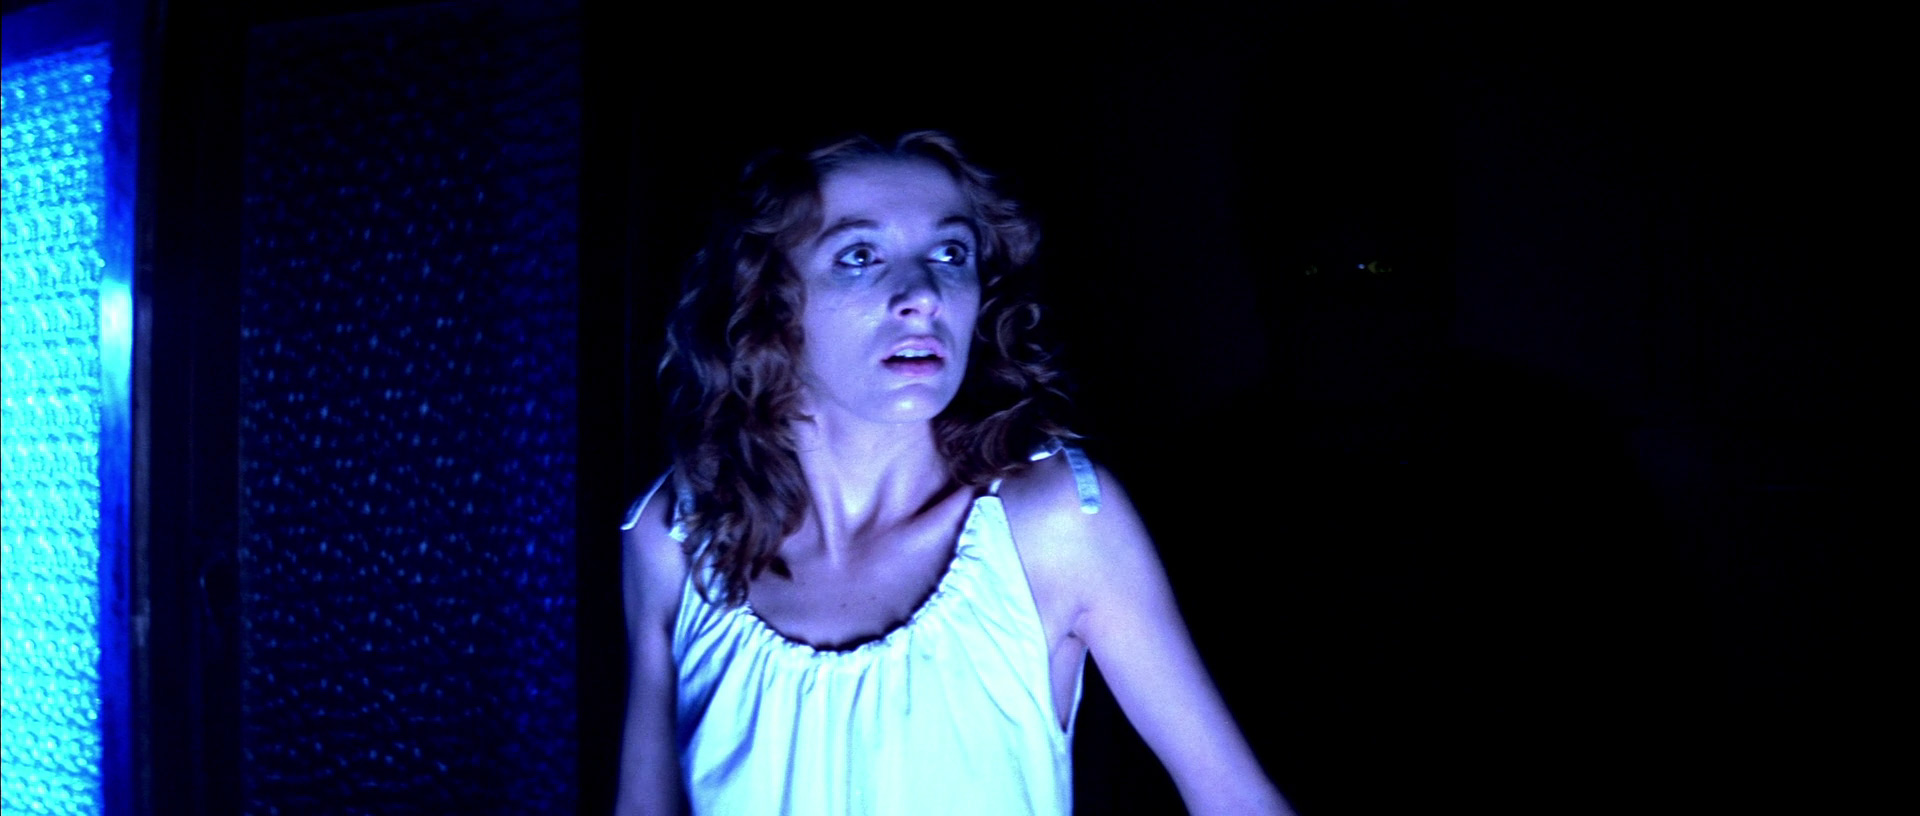 Stefania Casini in Suspiria